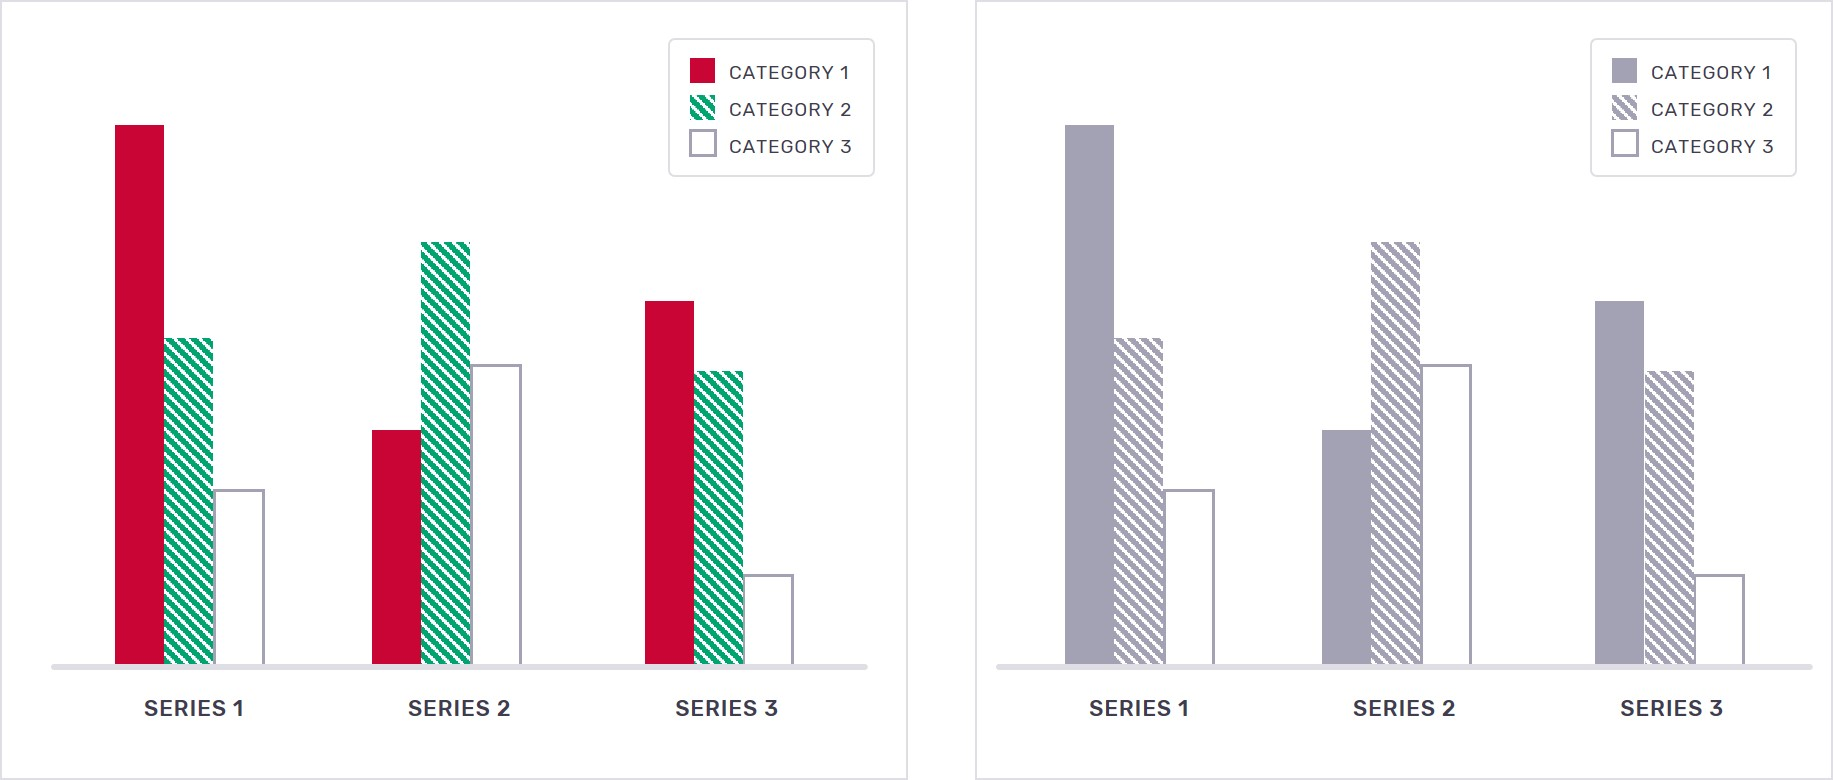 Textures and patterns help distinguish series in a graph for accessible presentation design